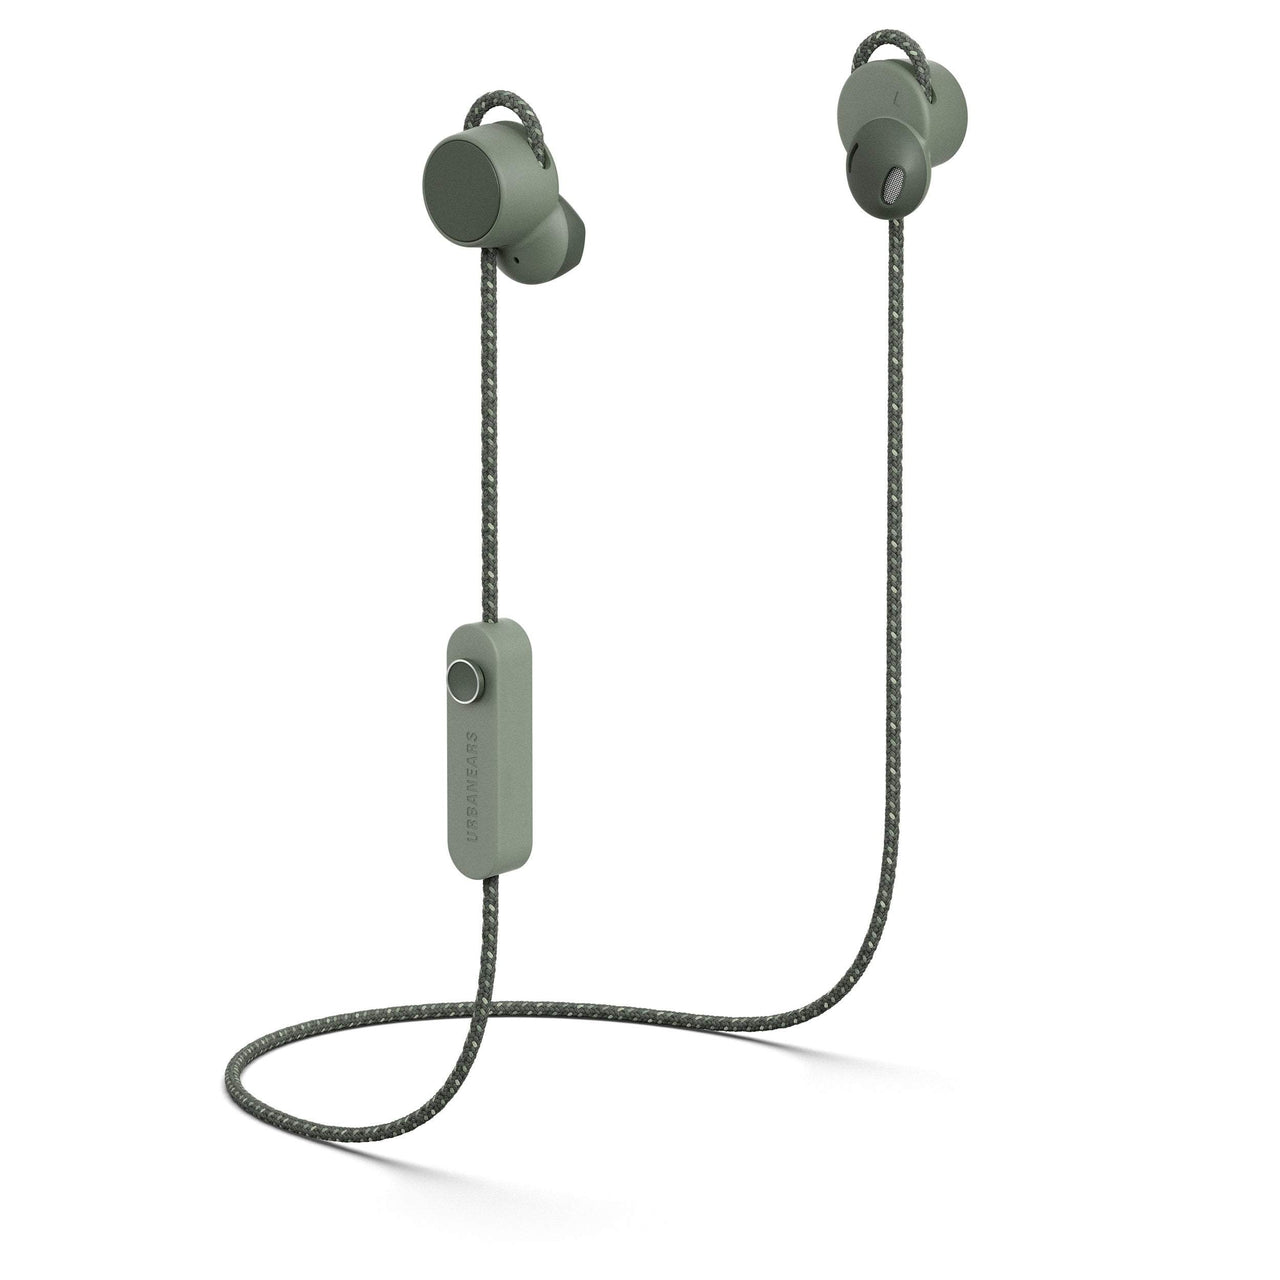 Jakan Bluetooth Earbuds - Field Green [Event Exclusive], Headphones, Urbanears, ASH Asia